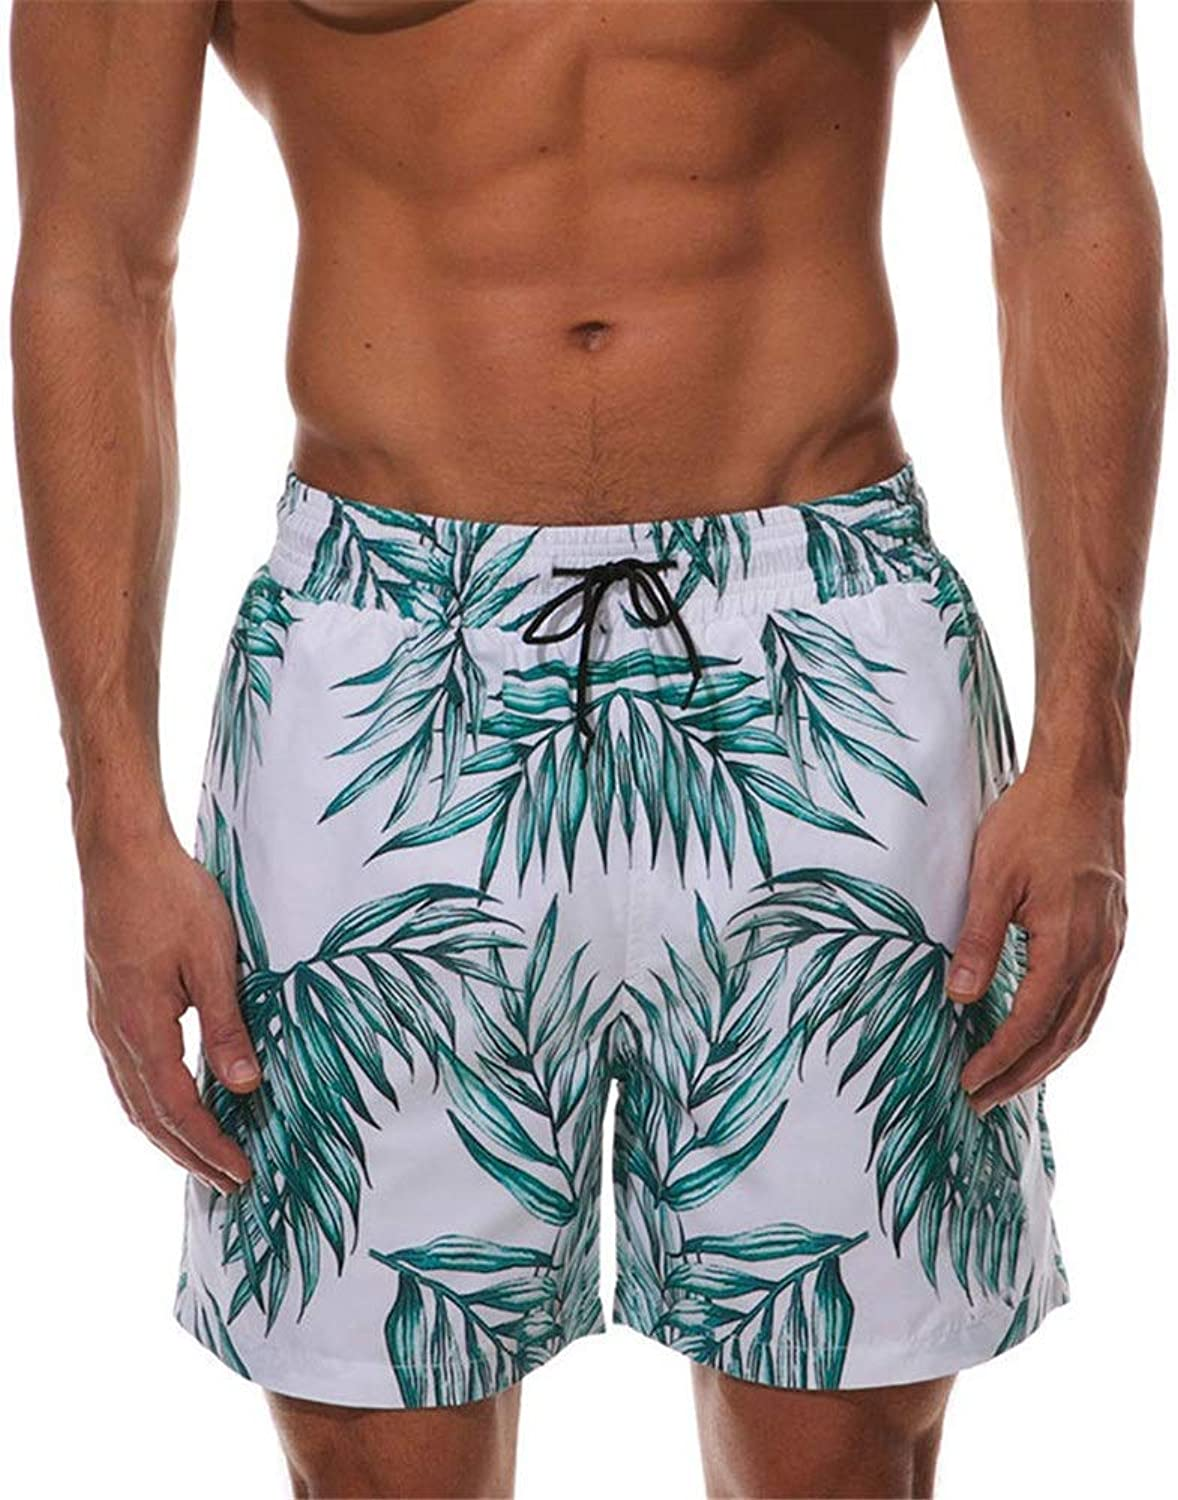 Mens Swim Trunks Mens Swim Trunks Leaf Pattern Quick Dry Beach Shorts Surfing Boardshorts Waterproof Summer Holiday Swimwear Bath Swimsuits Casual Sport Swimming Short (color   White, Size   XXL)